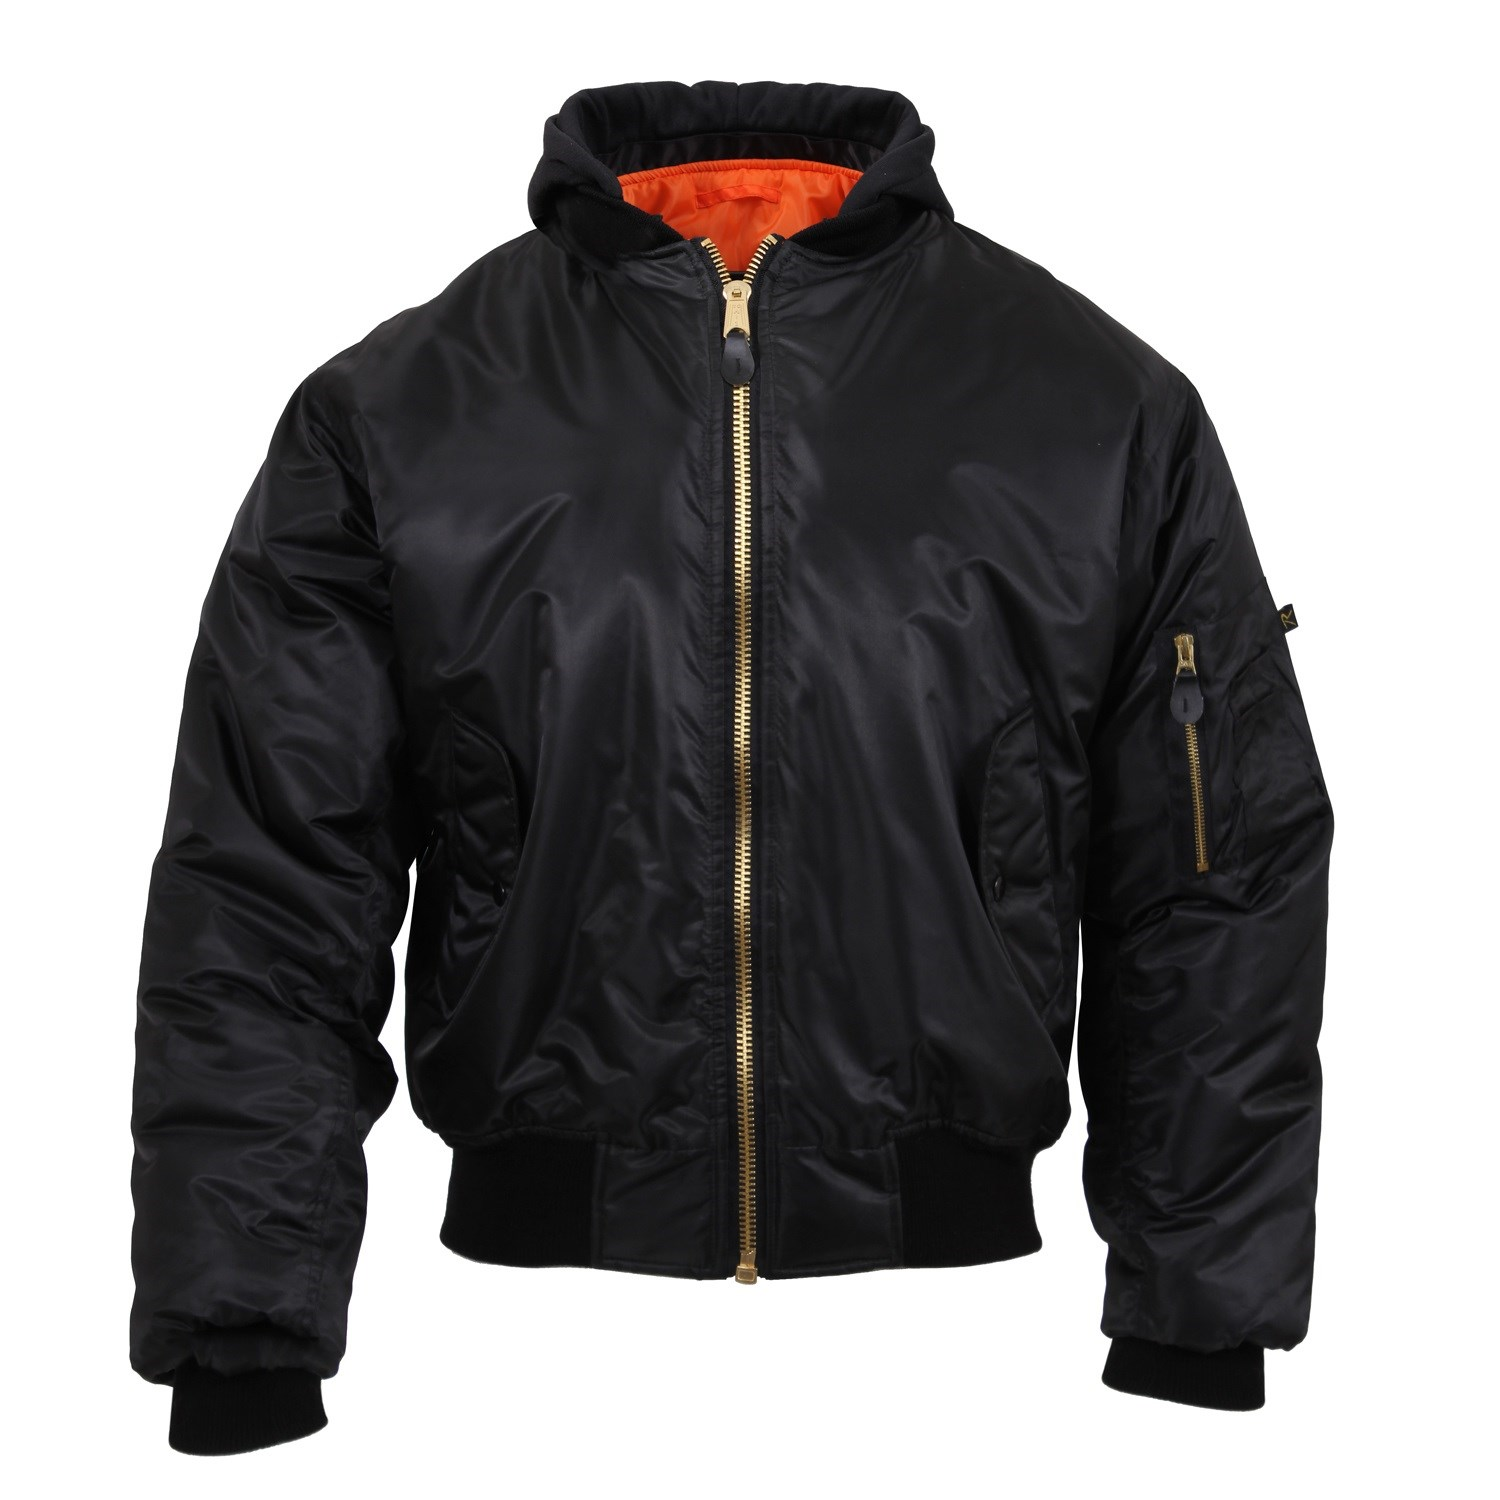 Jacket ULTRA FORCE MA1 FLIGHT BLACK ROTHCO 7400 L-11